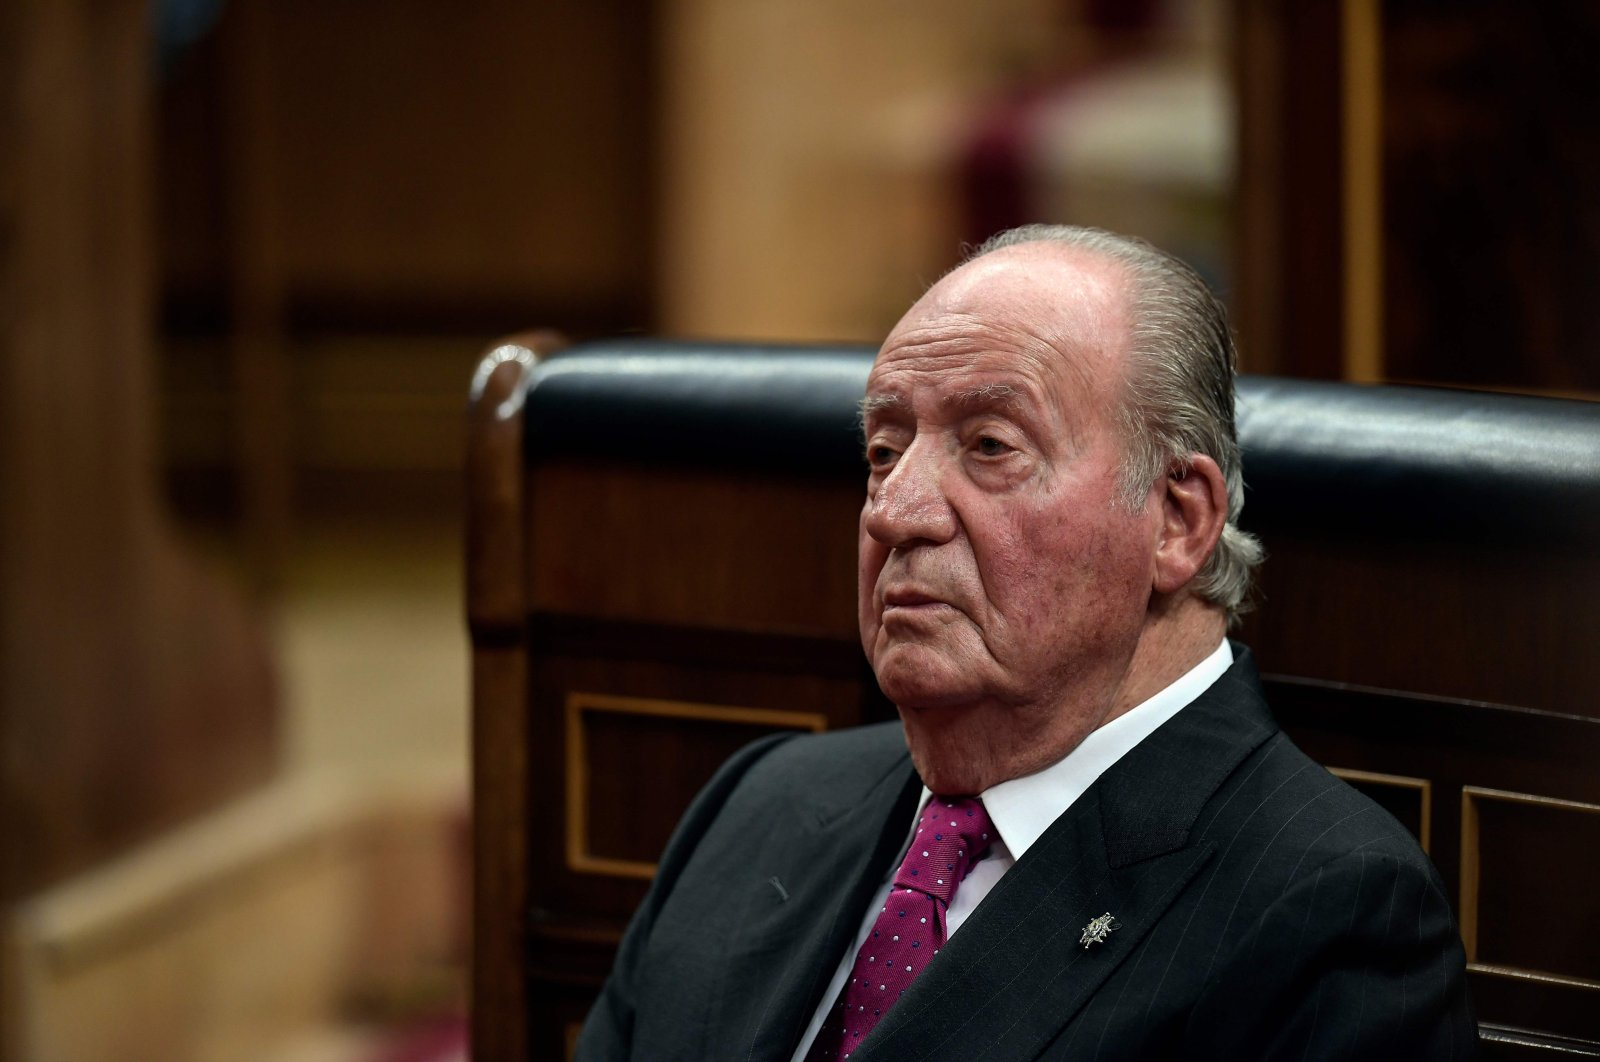 Spain's former King Juan Carlos attends commemorative acts marking the 40th anniversary of the Spanish Constitution at the parliament, Madrid, Dec. 6, 2018. (AFP Photo)